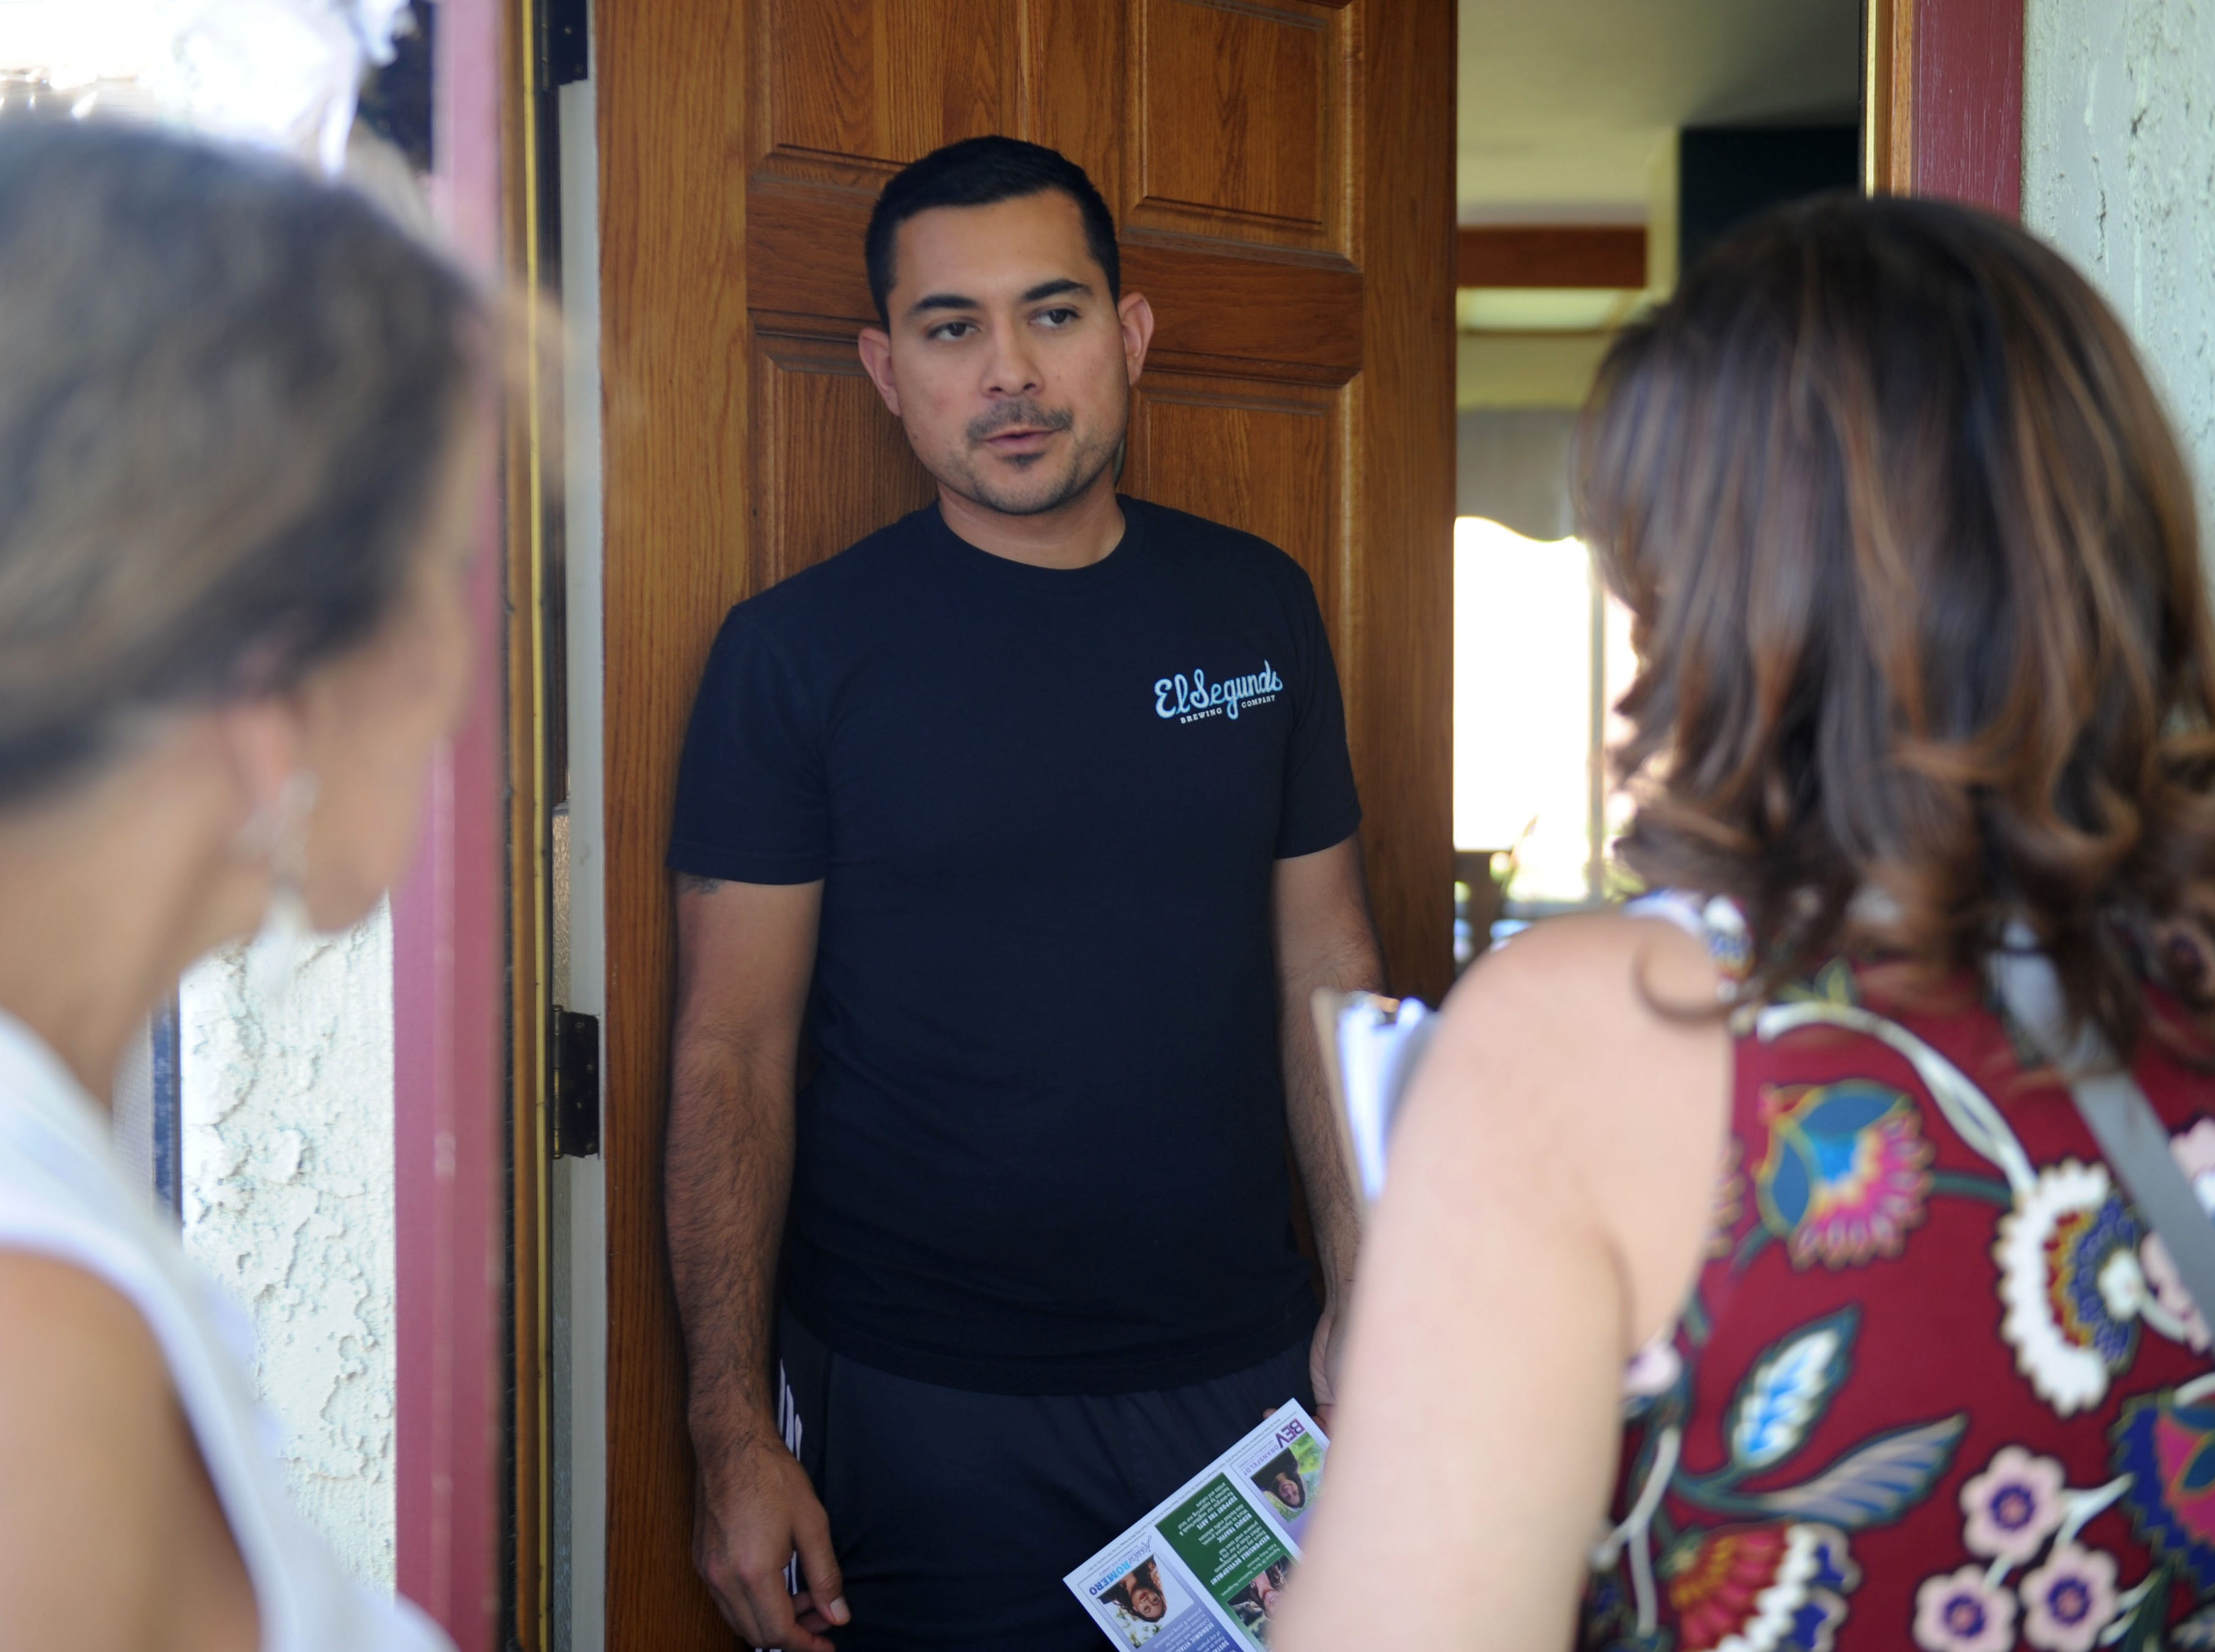 Roberto Leon, center, talks with Susan Santangelo as she goes door to door in Camarillo to talk to voters. Santangelo, Bev Dransfeldt and Jessica Romero decided to run as a ticket for Camarillo City Council. Edy Santangelo, right, joined her daughter on the campaign trail